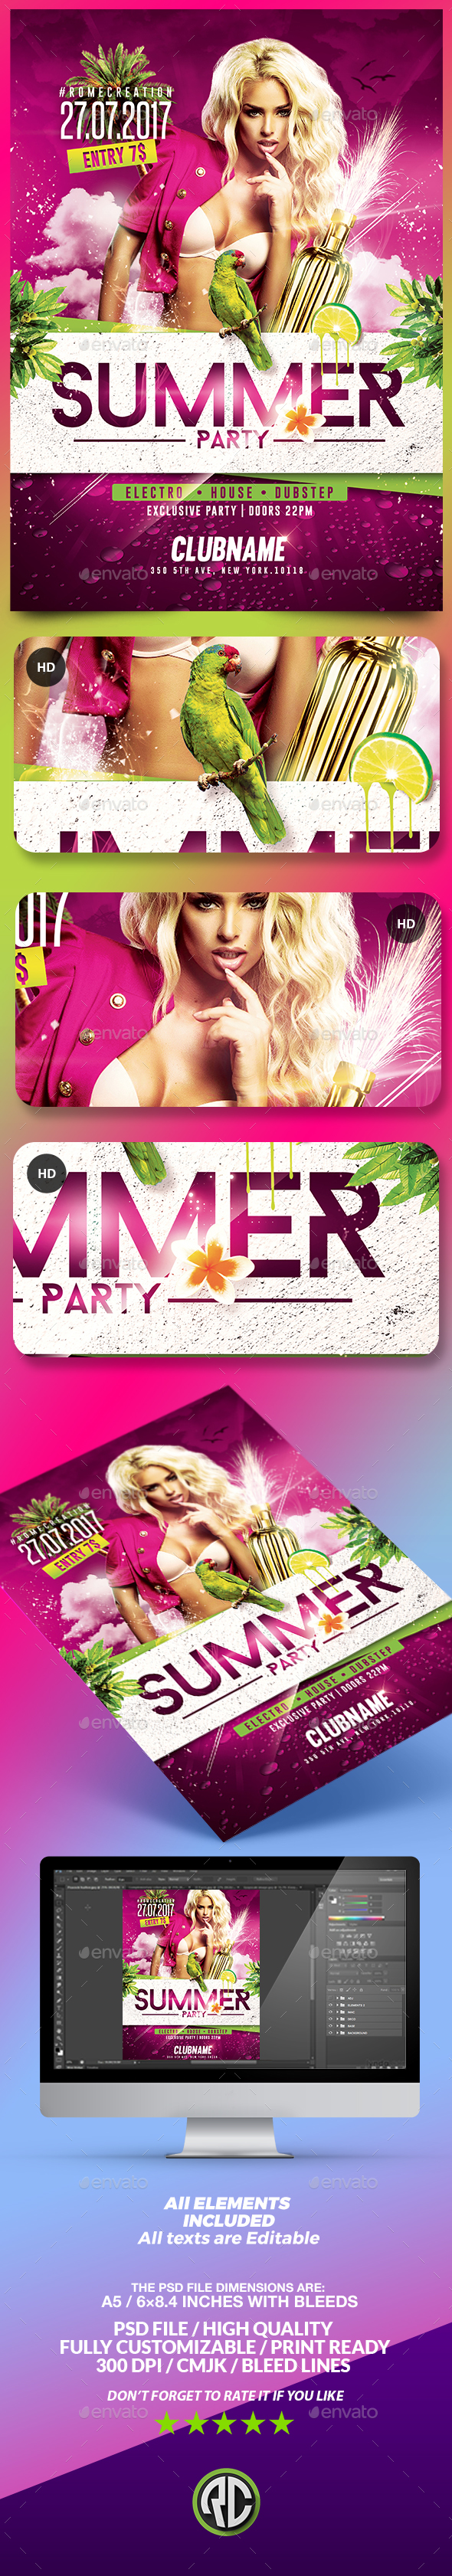 Summer Party | Flyer